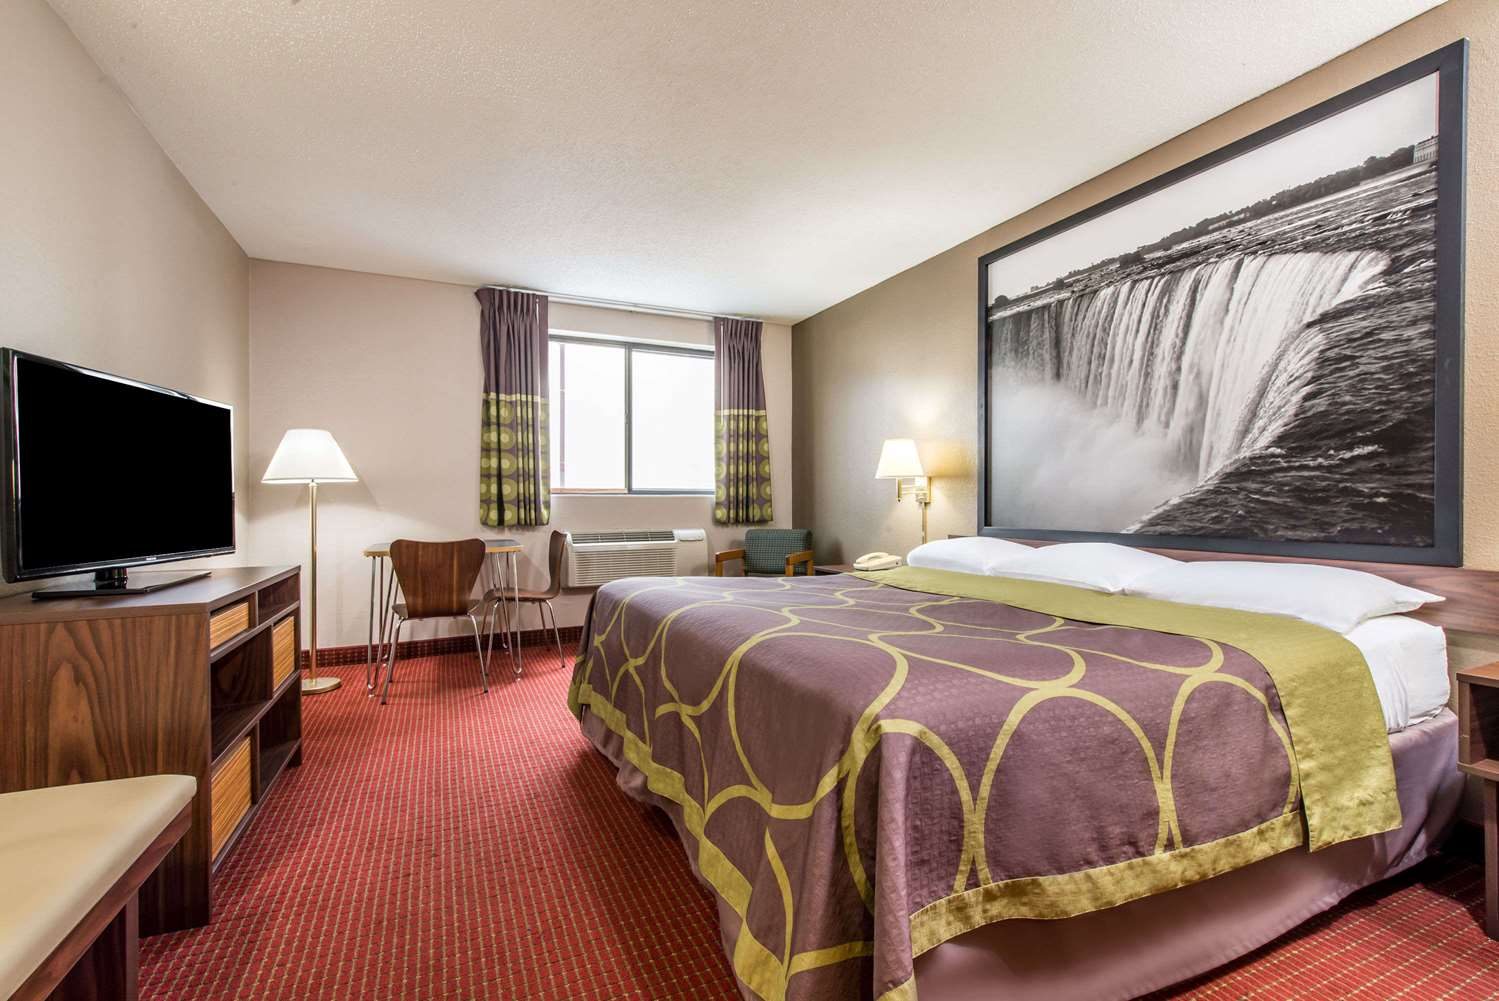 Niagara Falls Hotels With Jacuzzi In The Room And Fallsview